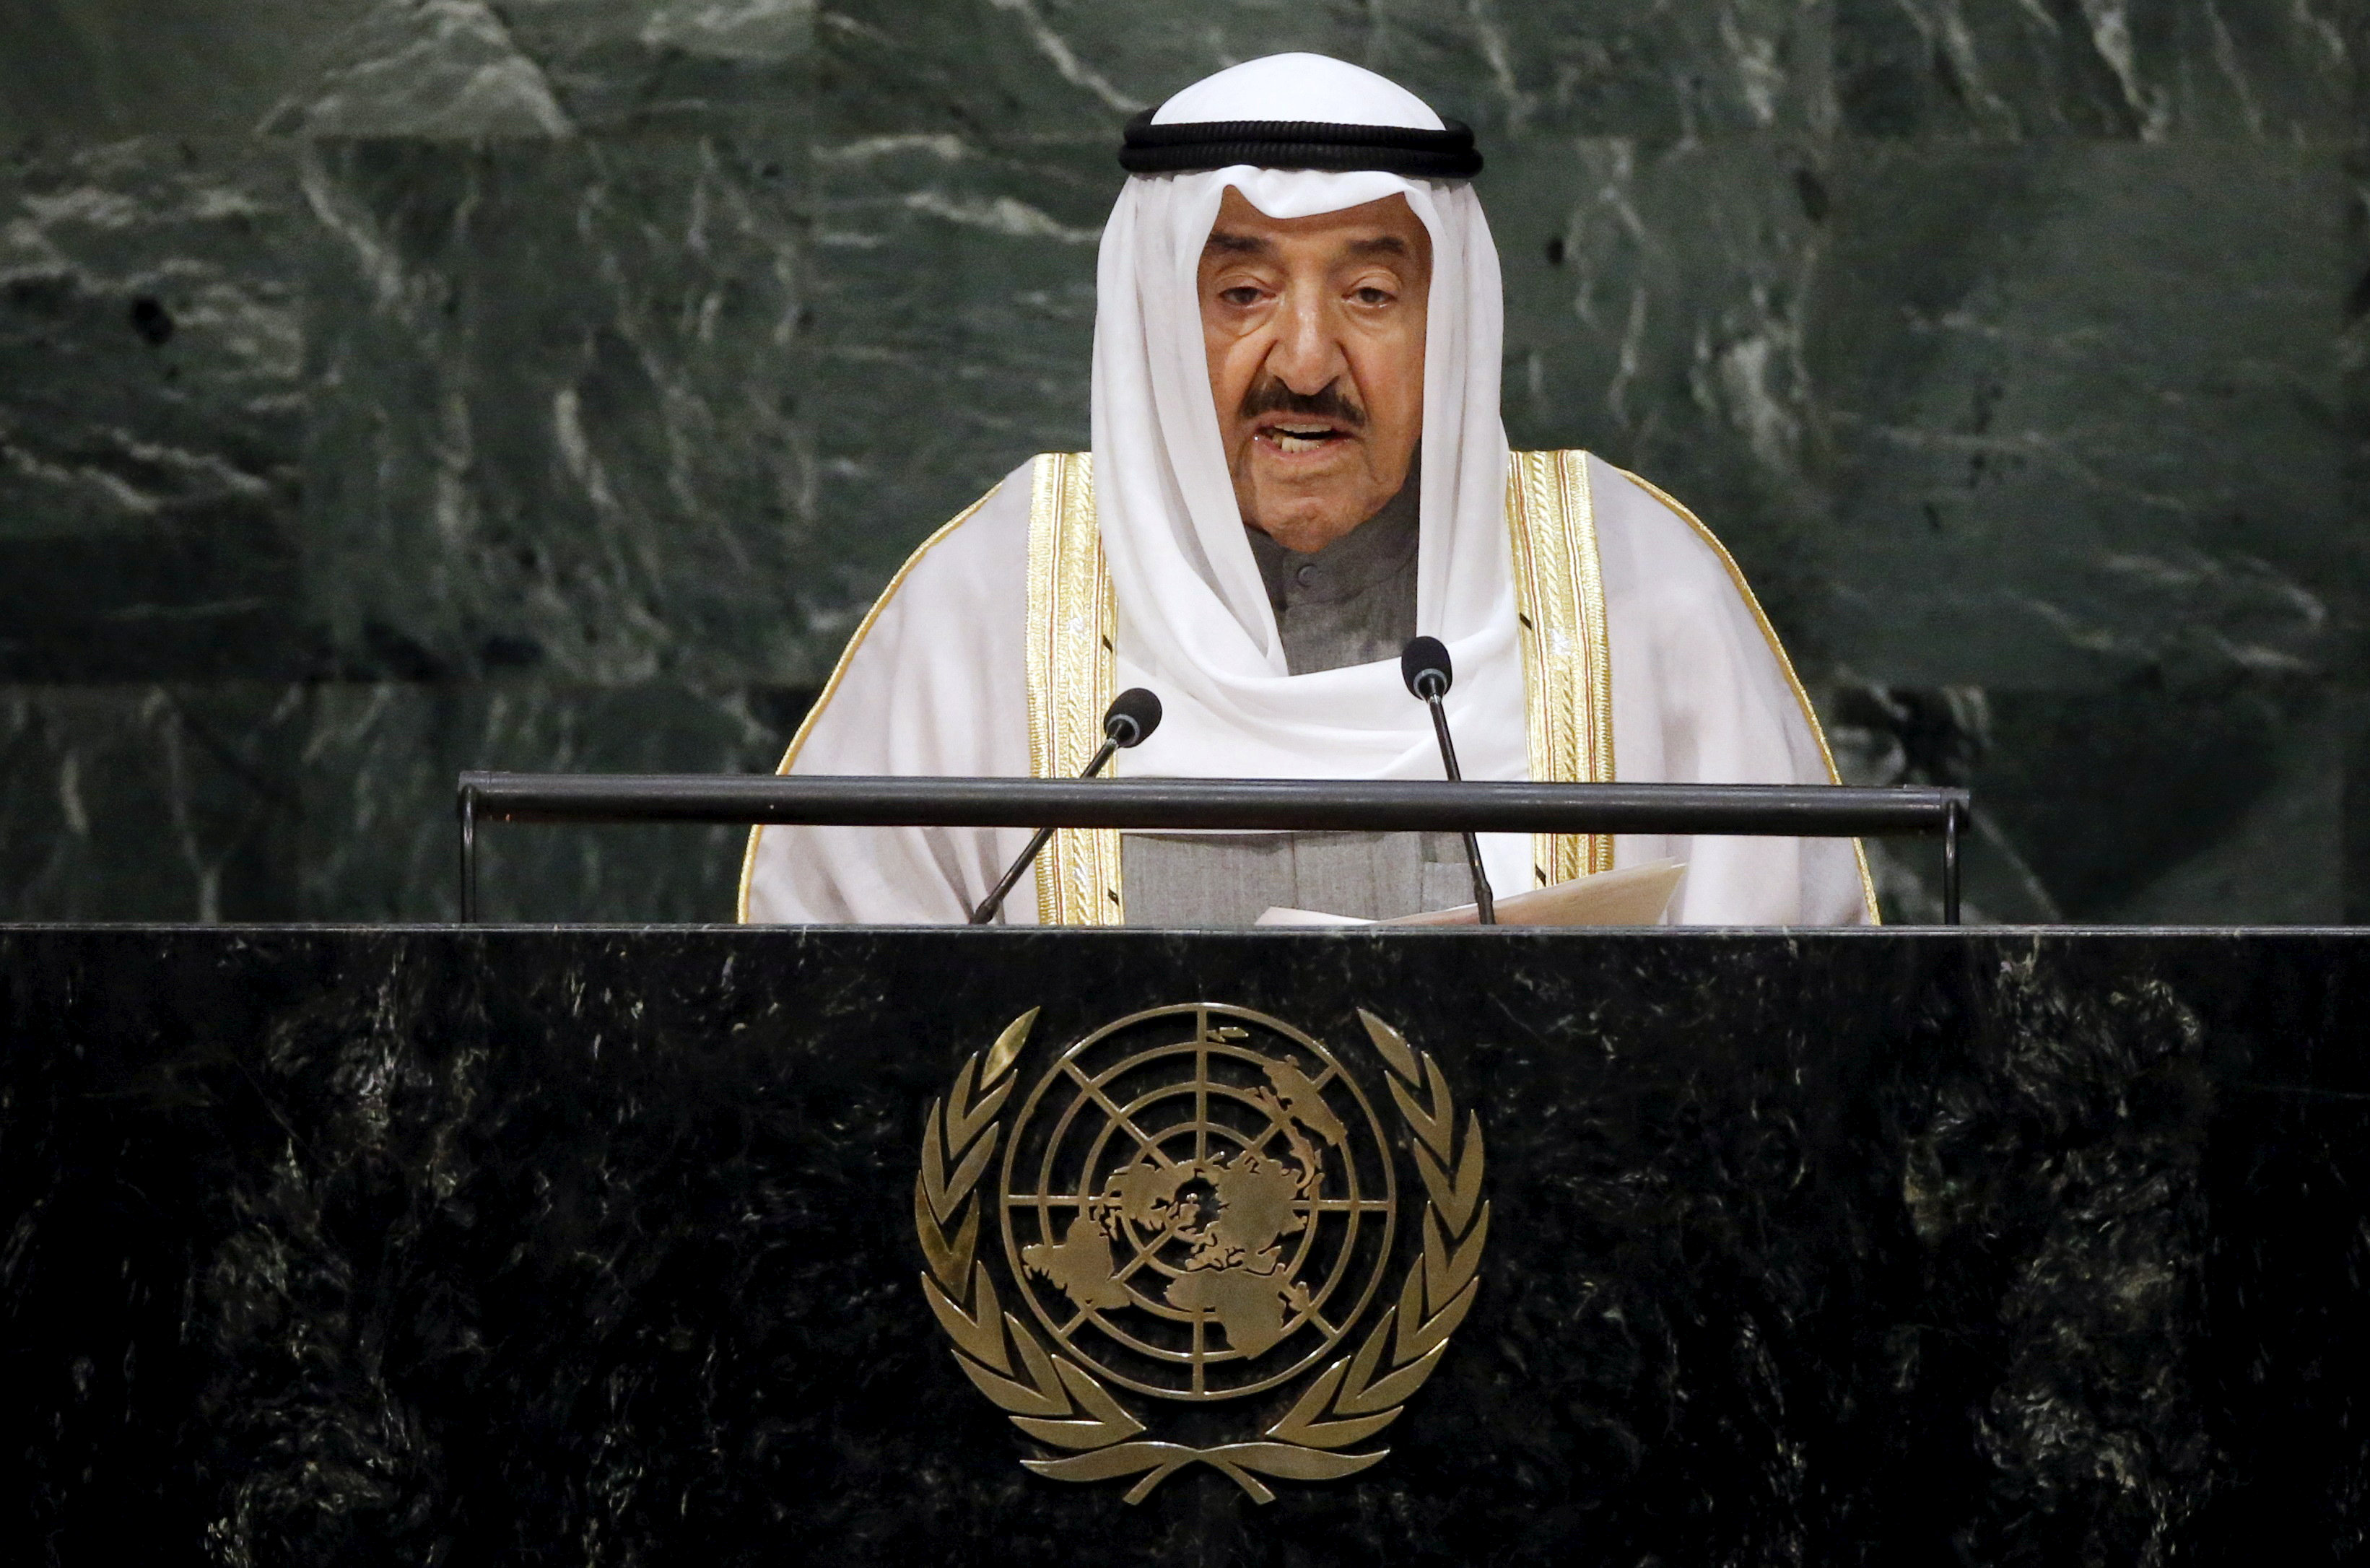 Kuwait's Emir Sheikh Sabah Al-Ahmad Al-Jaber Al-Sabah addresses a plenary meeting of the United Nations Sustainable Development Summit 2015 at the United Nations headquarters in Manhattan, New York on Sept. 26, 2015. (REUTERS/Carlo Allegri)